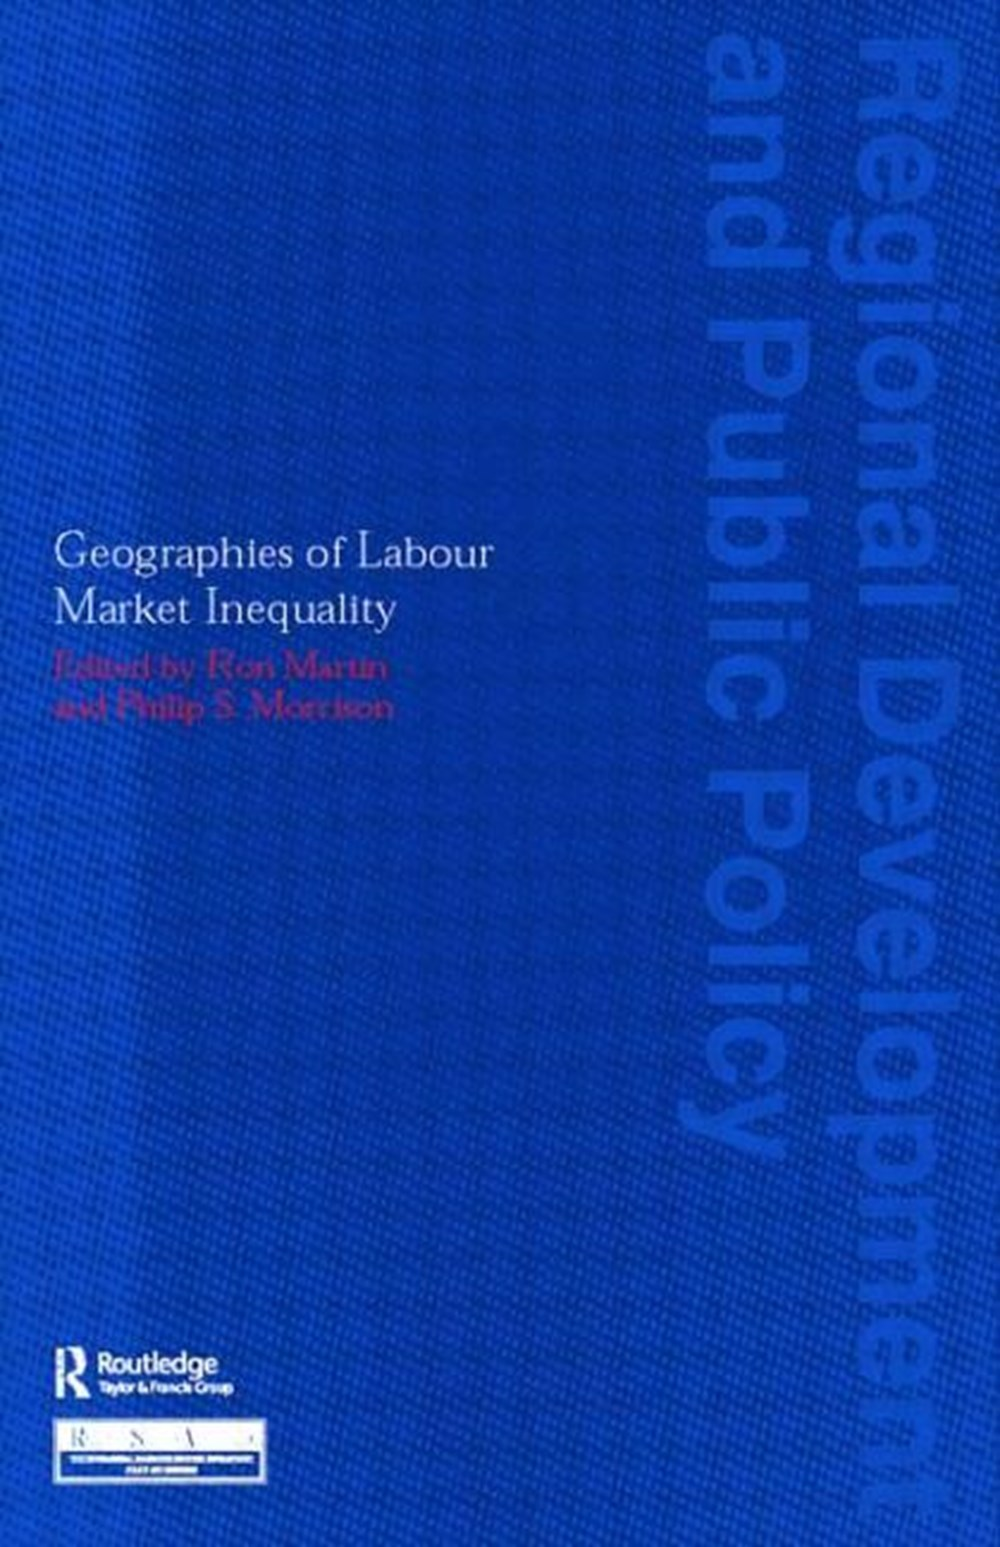 Geographies of Labour Market Inequality